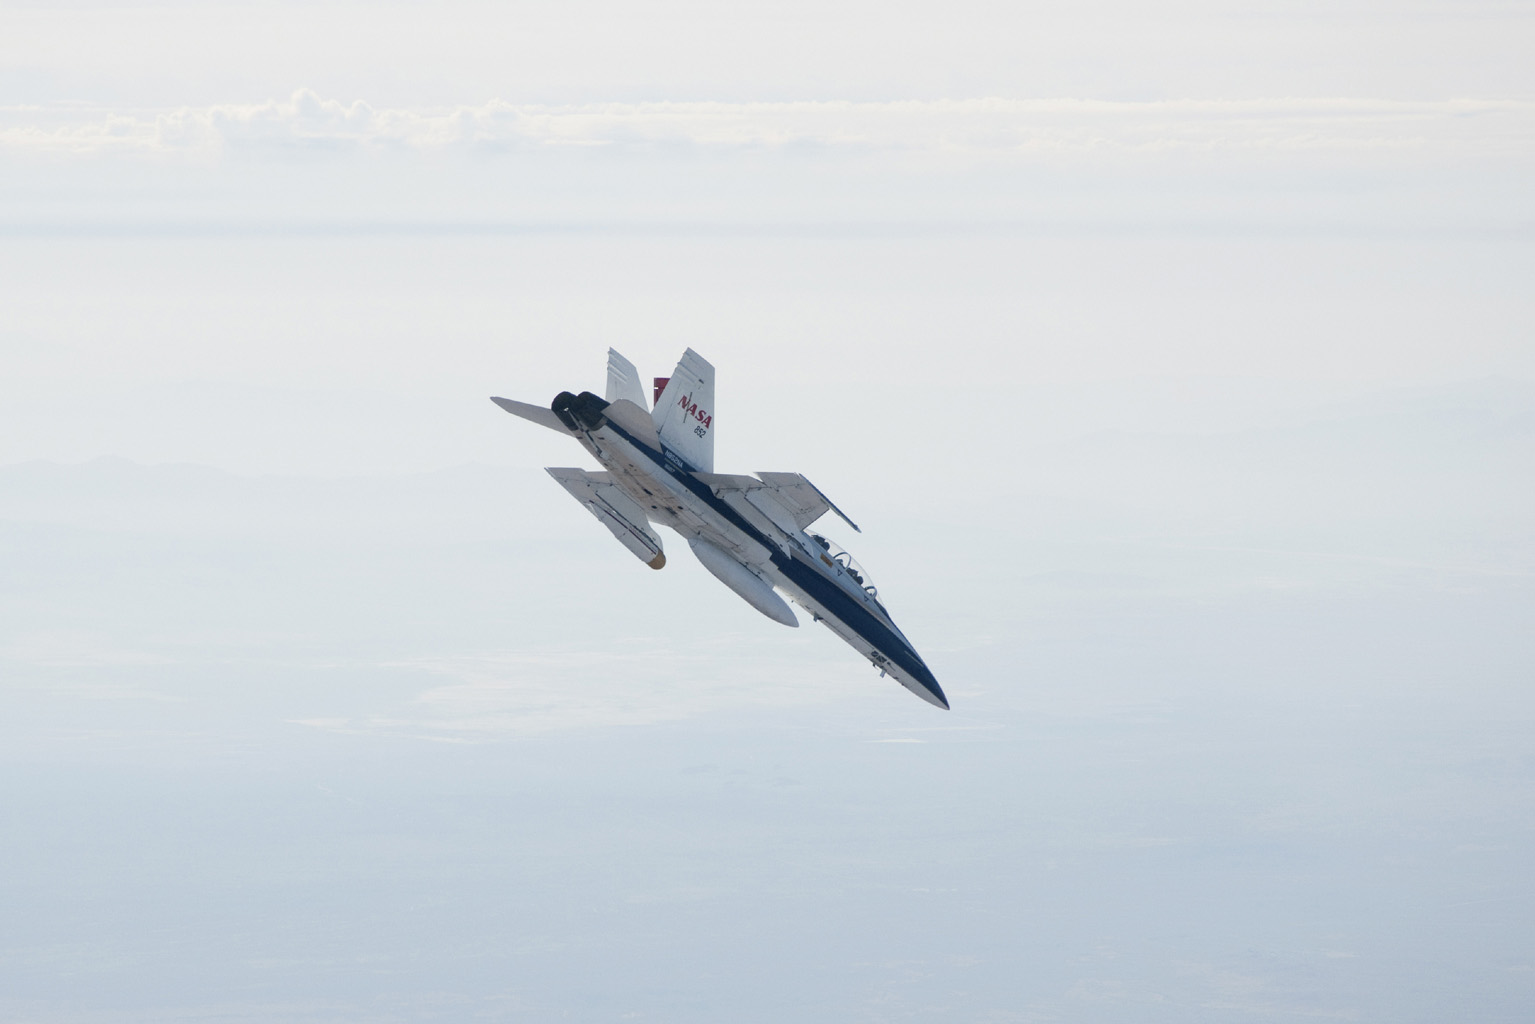 A NASA Dryden Flight Research Center F/A-18 852 aircraft makes a 40-degree dive during June 2011 flight tests of a Mars landing radar. A test model of the landing radar for NASA's Mars Science Laboratory mission is inside a pod under the left wing.